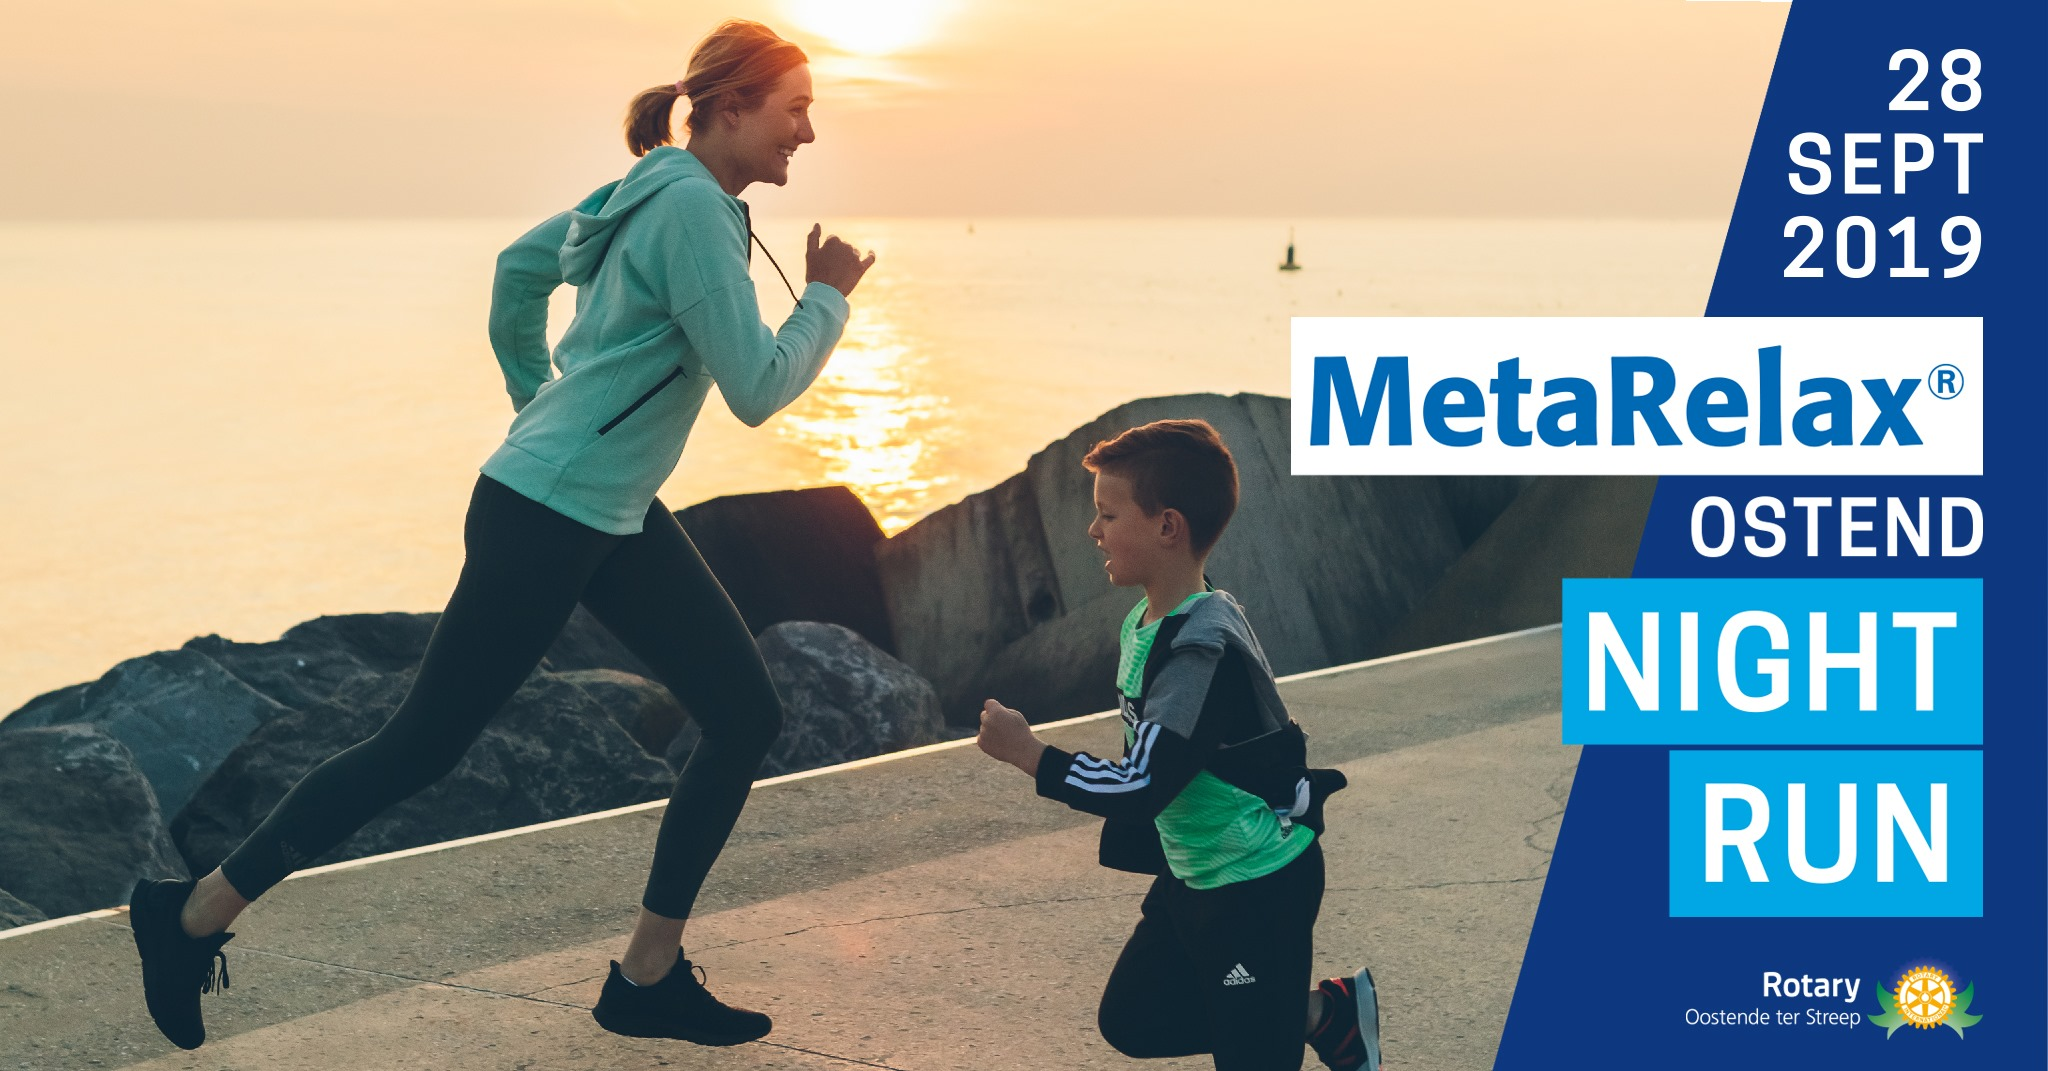 metarelax ostend night run